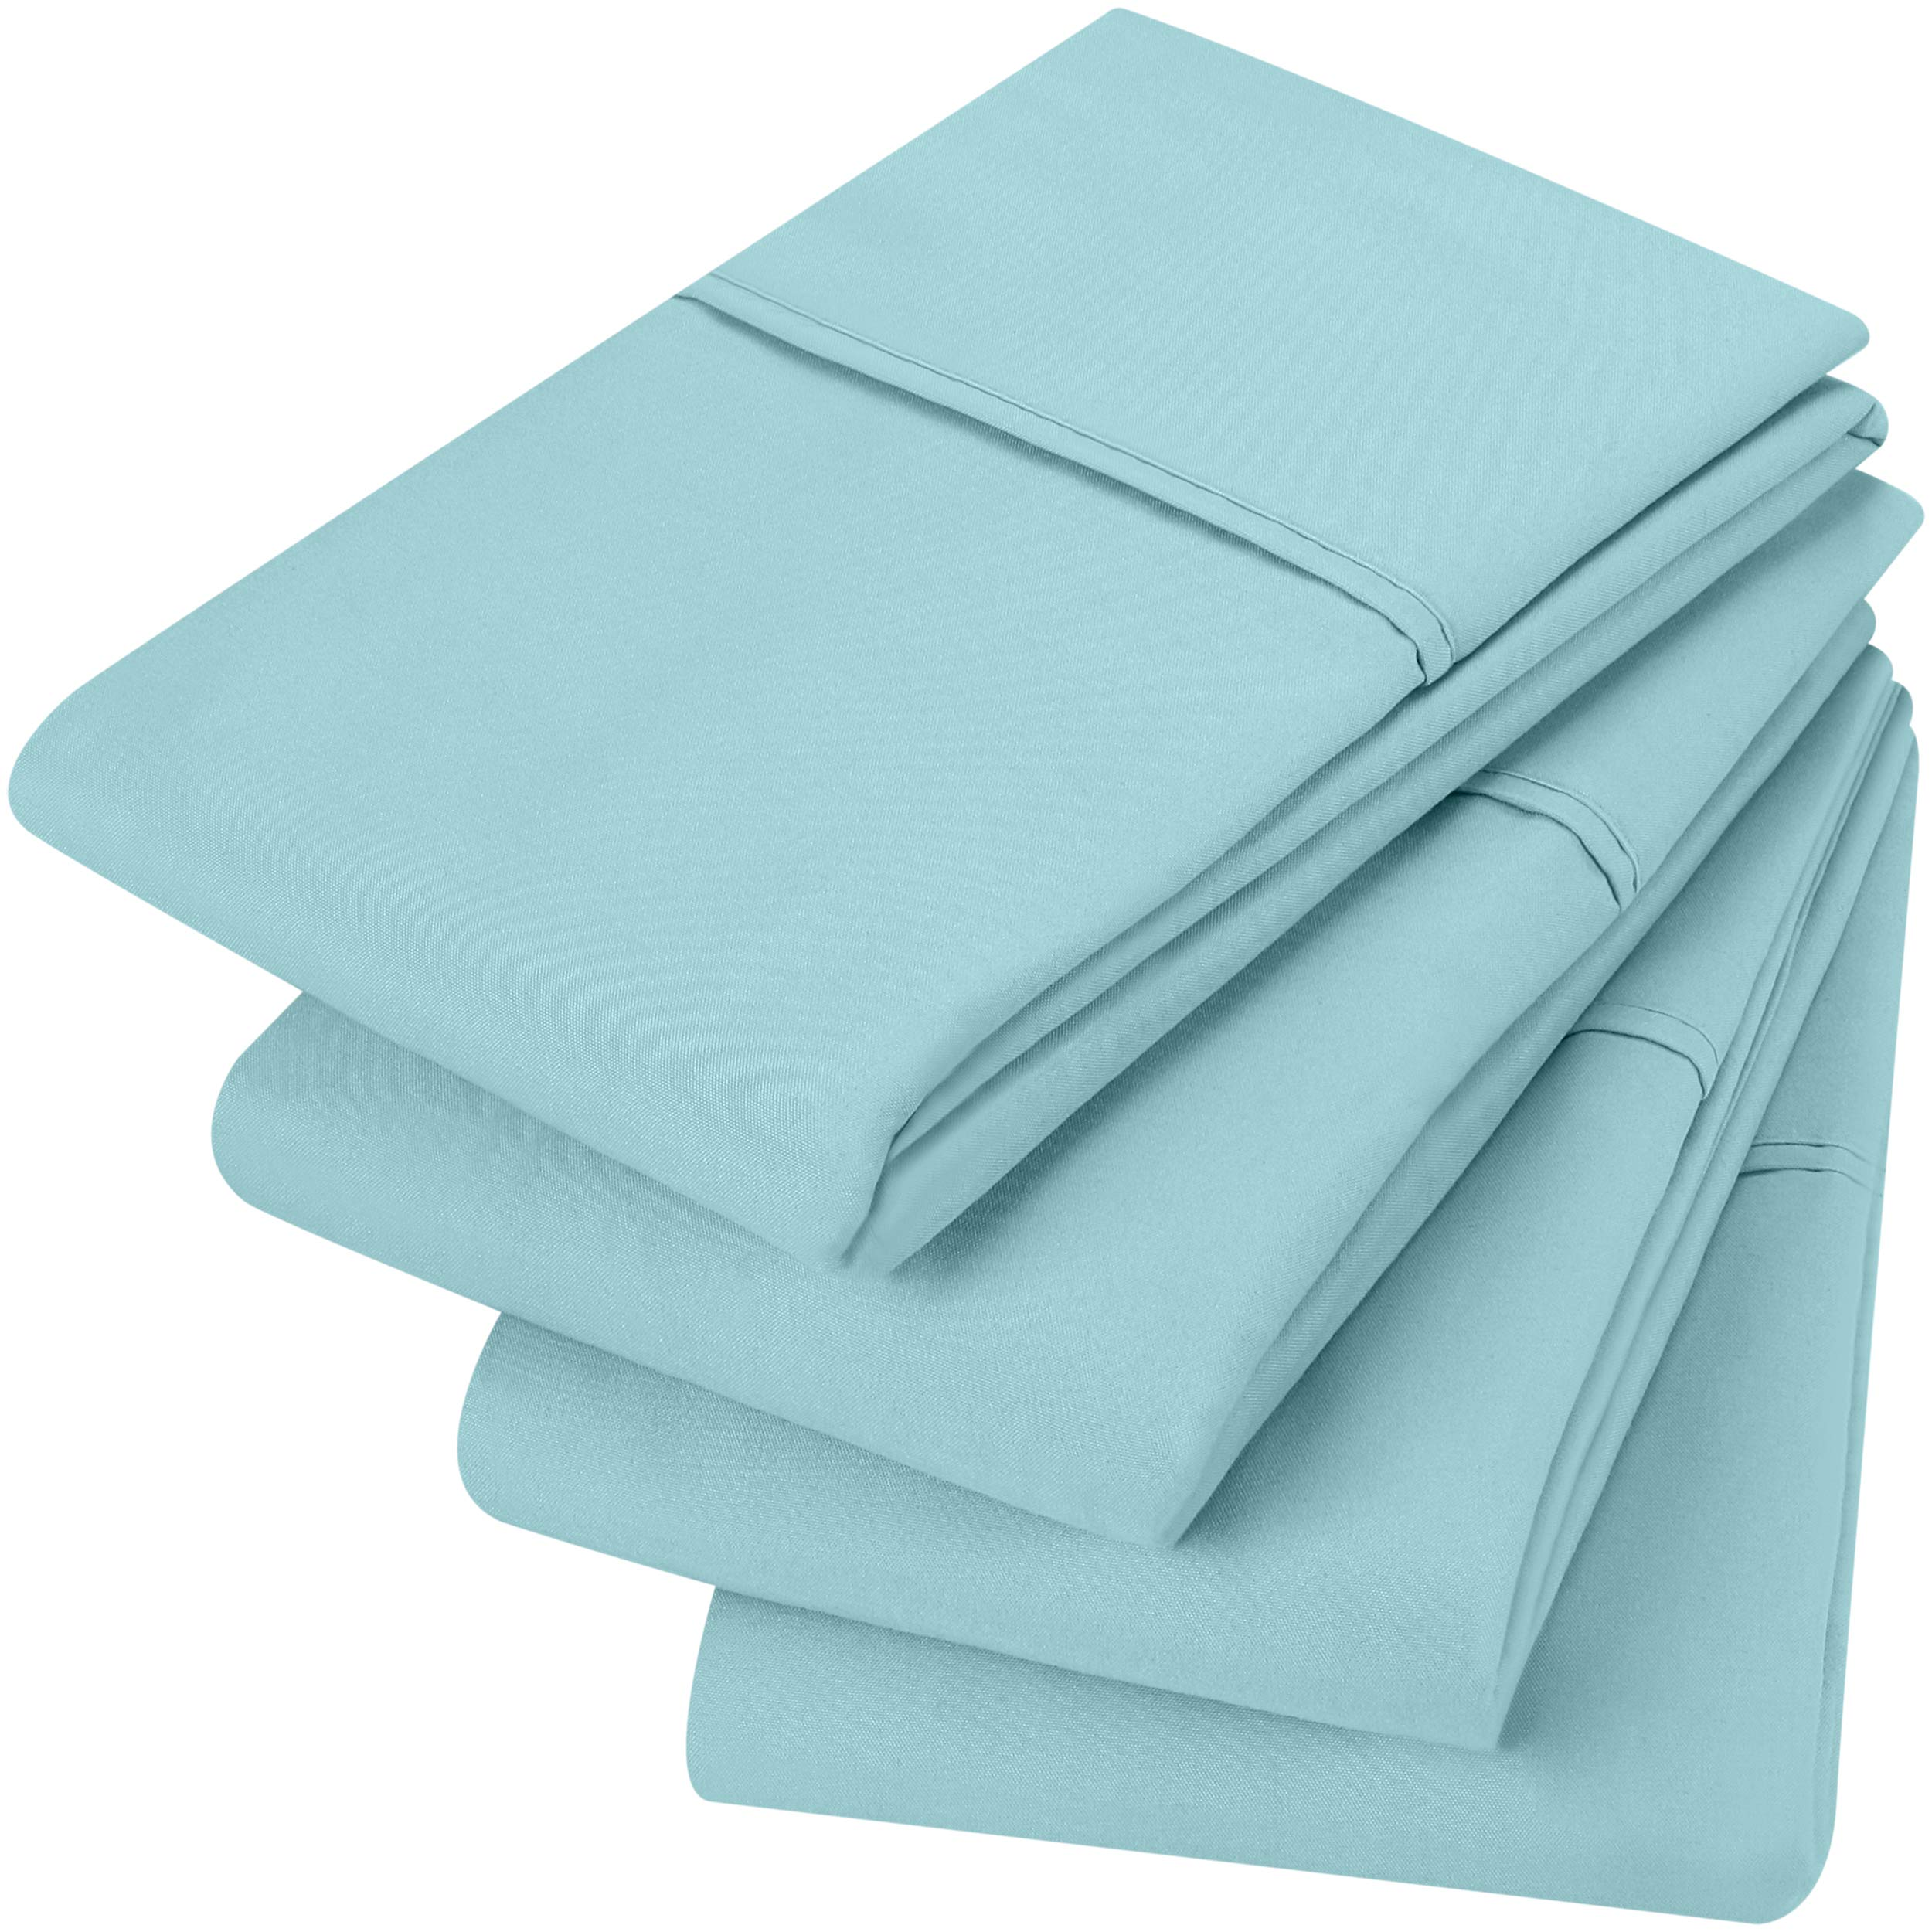 Utopia Bedding Pillowcases - 4 Pack - Envelope Closure - Soft Brushed Microfiber Fabric- Wrinkle, Shrinkage and Fade Resistant Pillow Covers (King, Spa Blue)